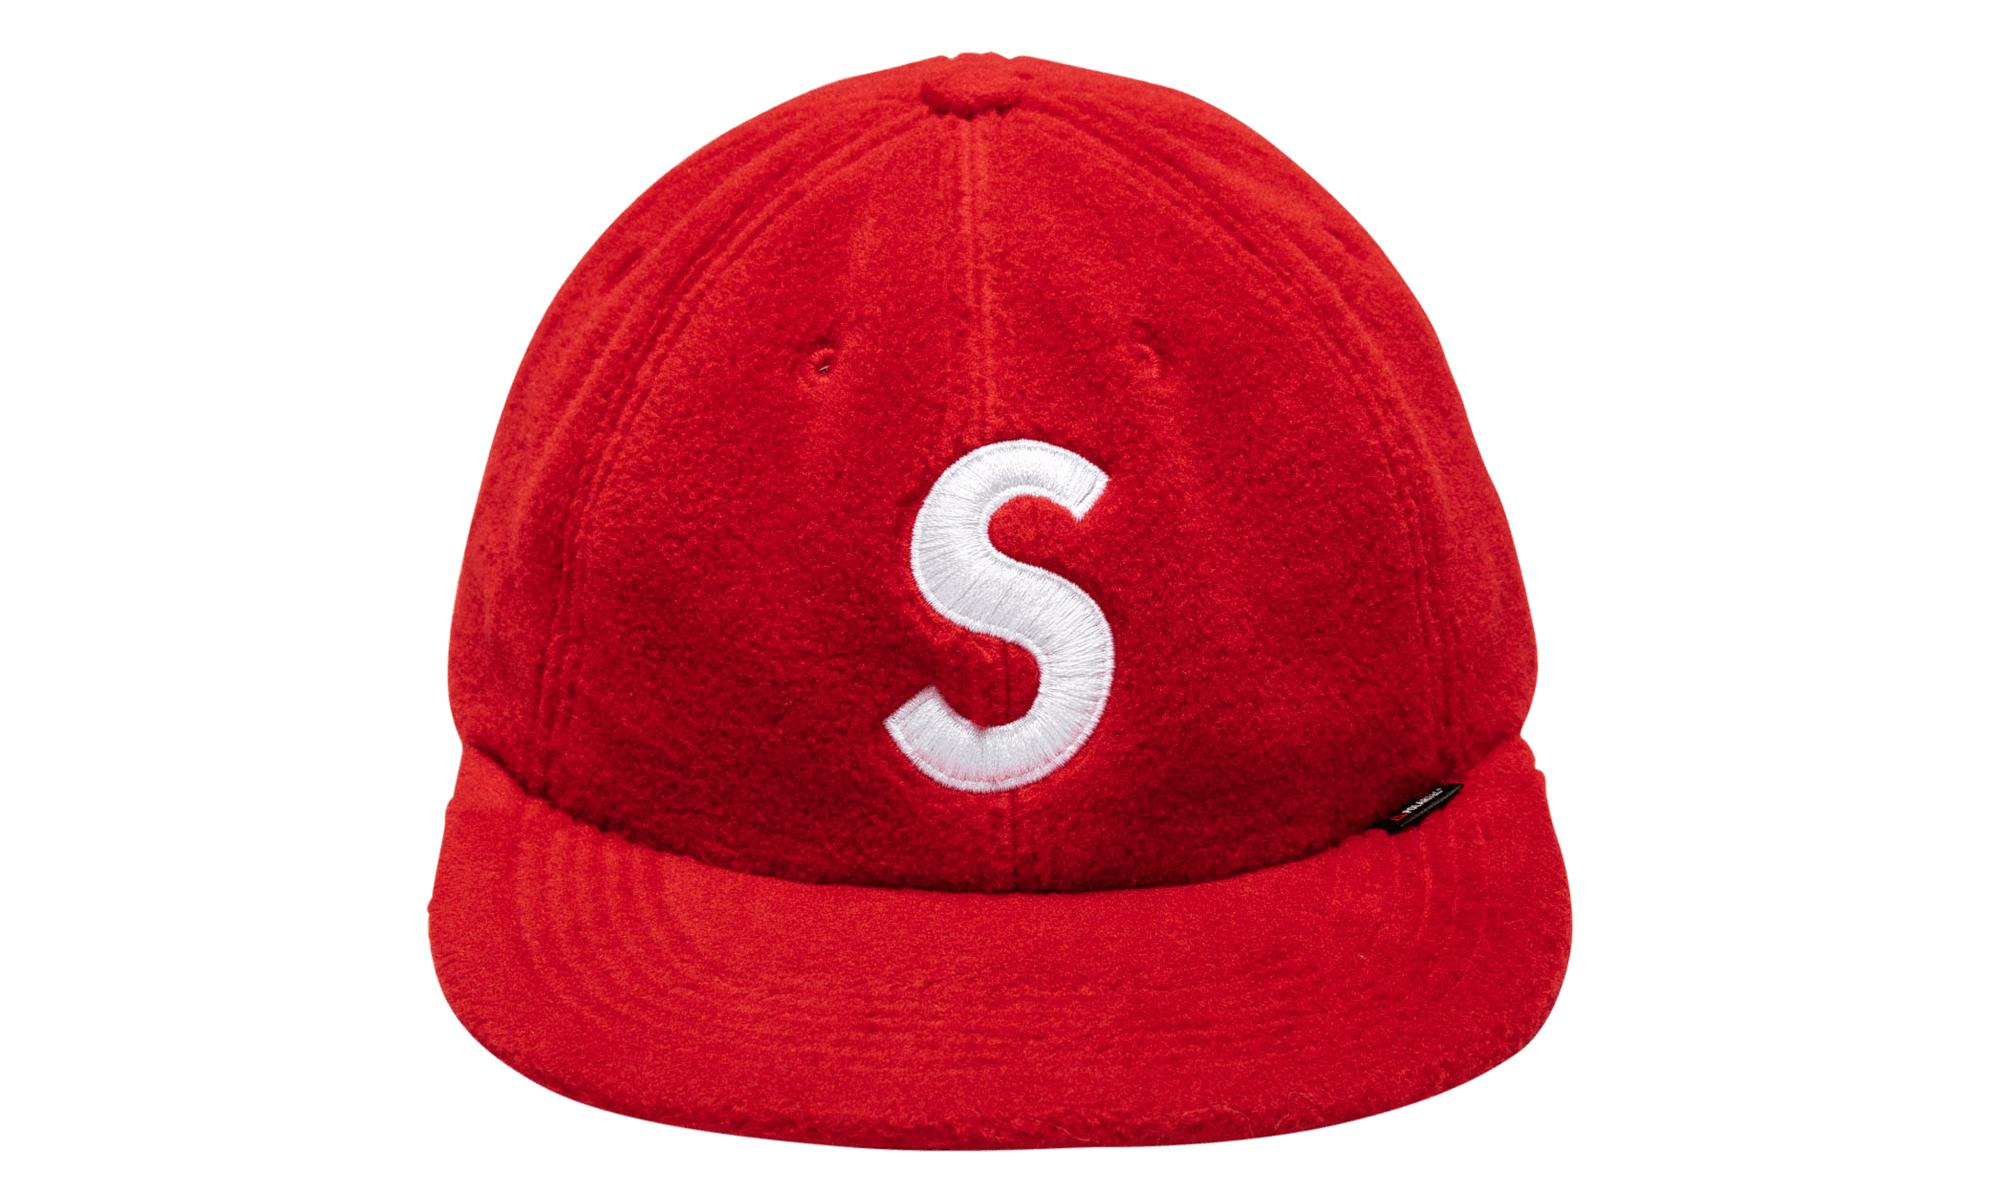 78512ba6 Supreme Polartec S Logo 6-panel Hat in Red for Men - Save 23% - Lyst